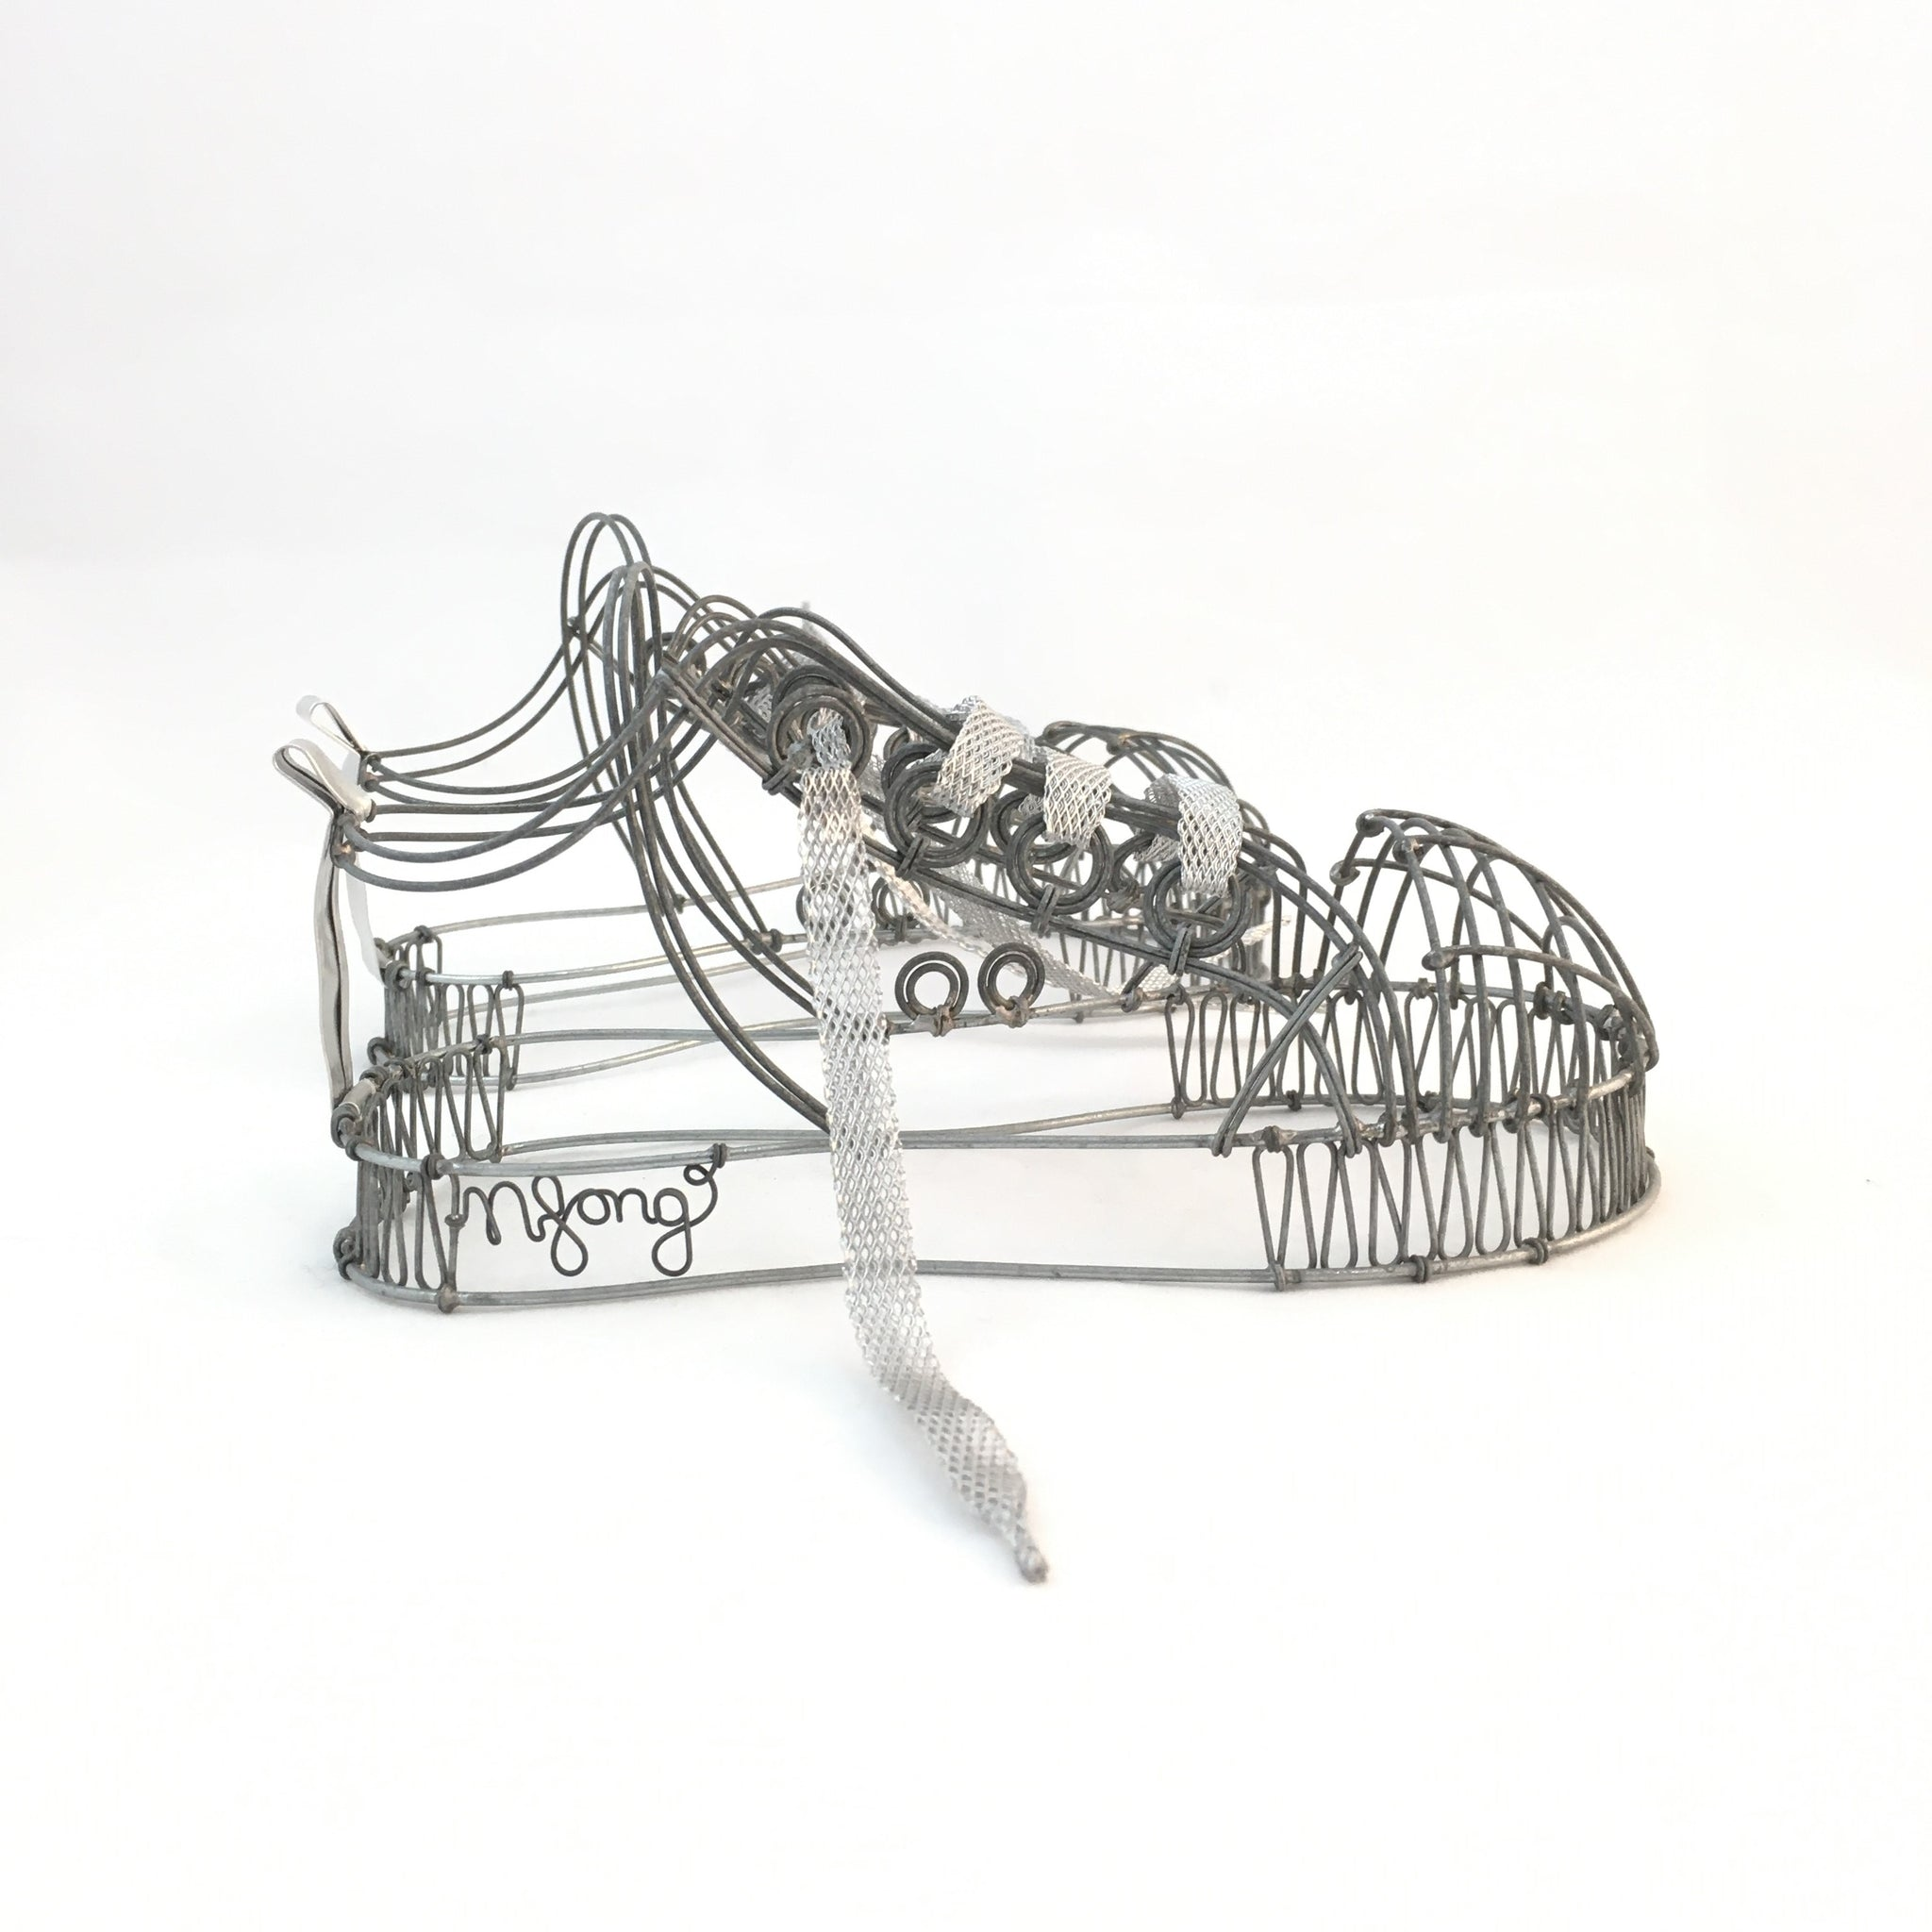 wire shoes at Craft NSW